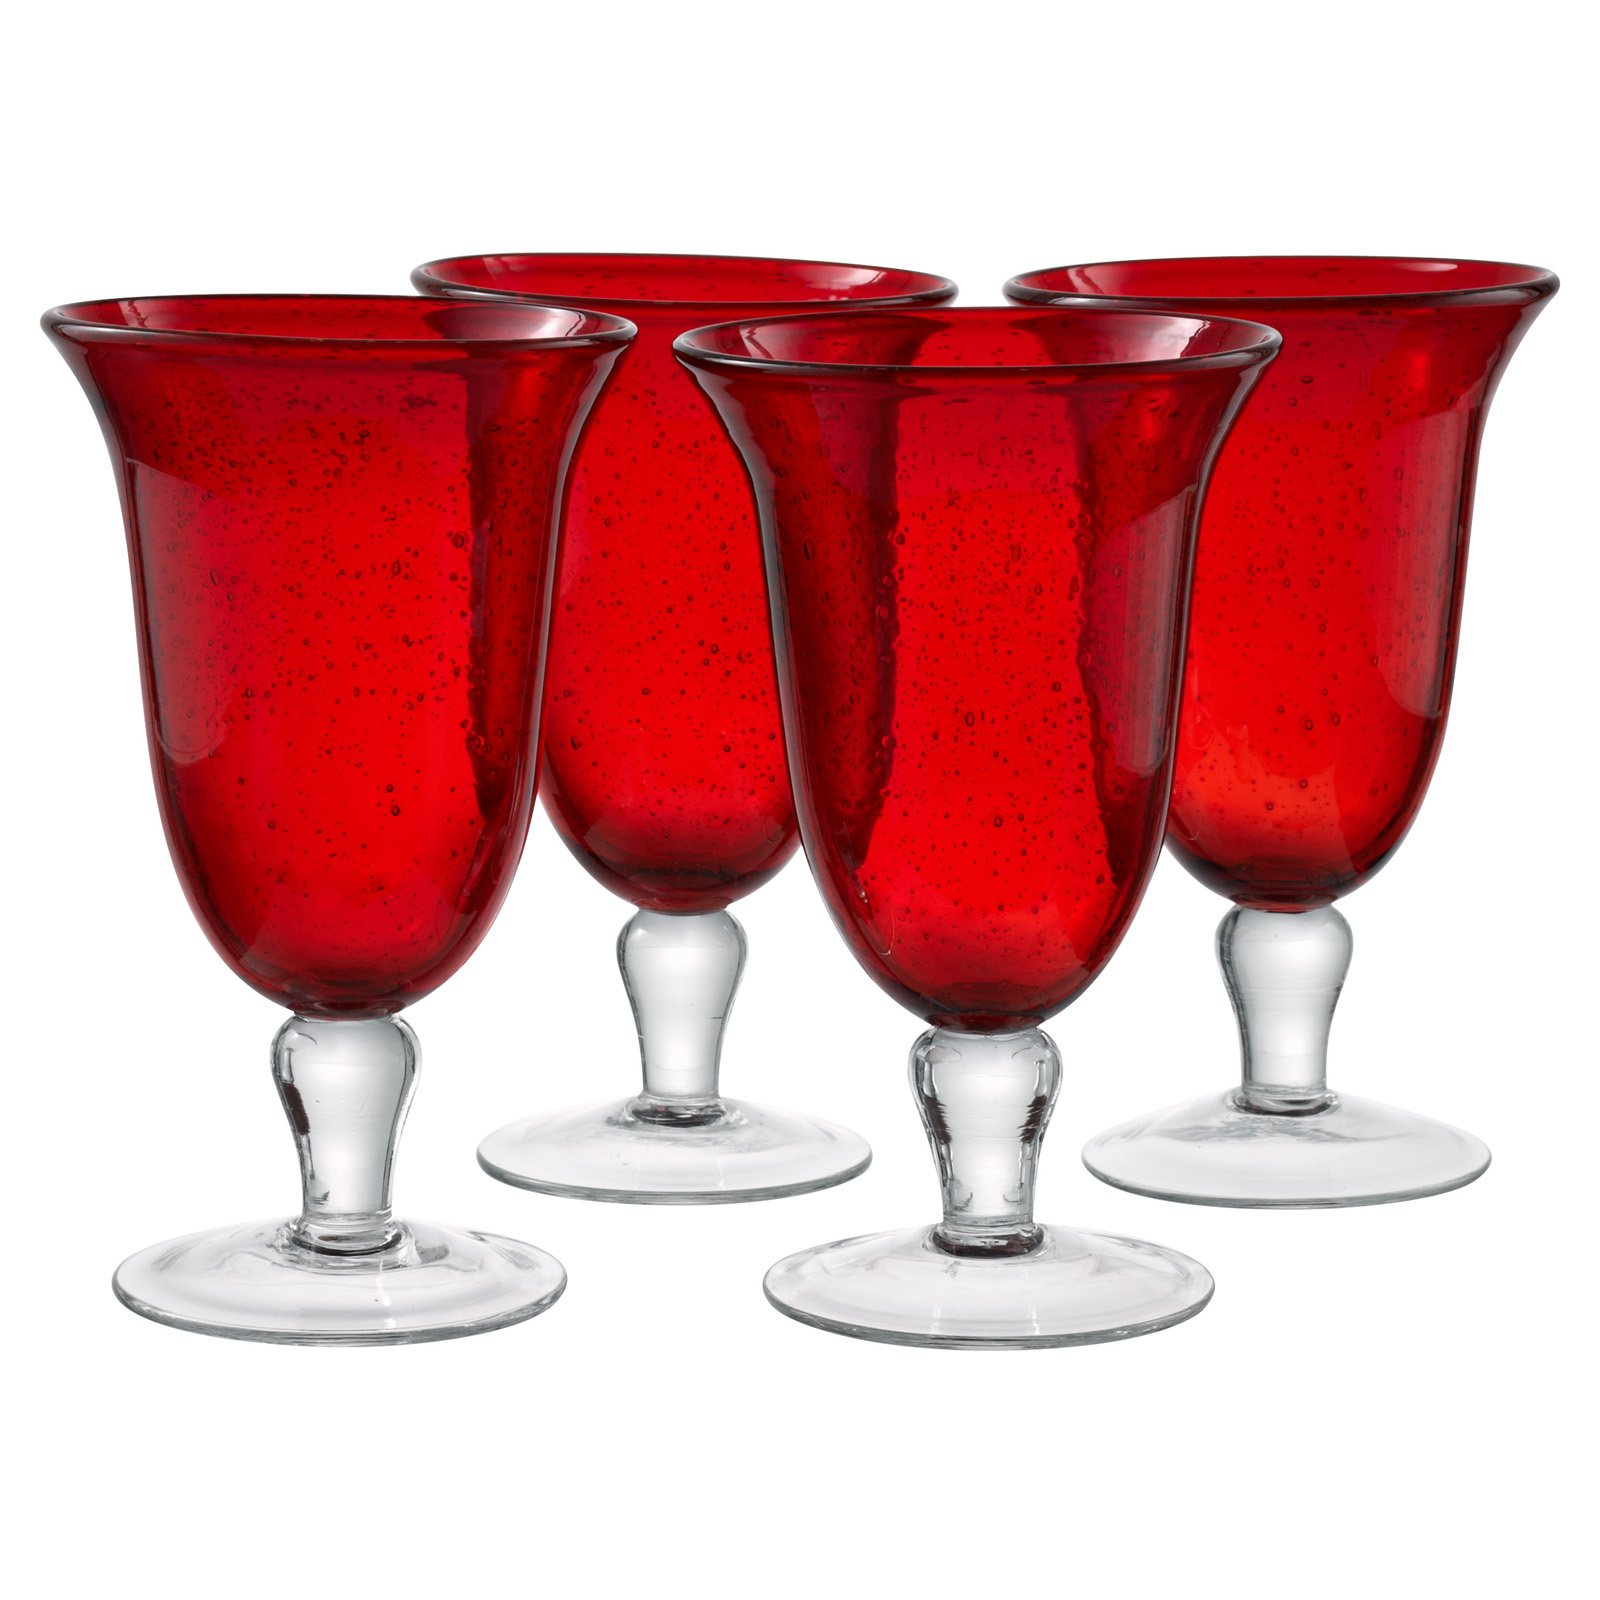 Artland Inc. Iris Ice Tea Glasses - Set of 4